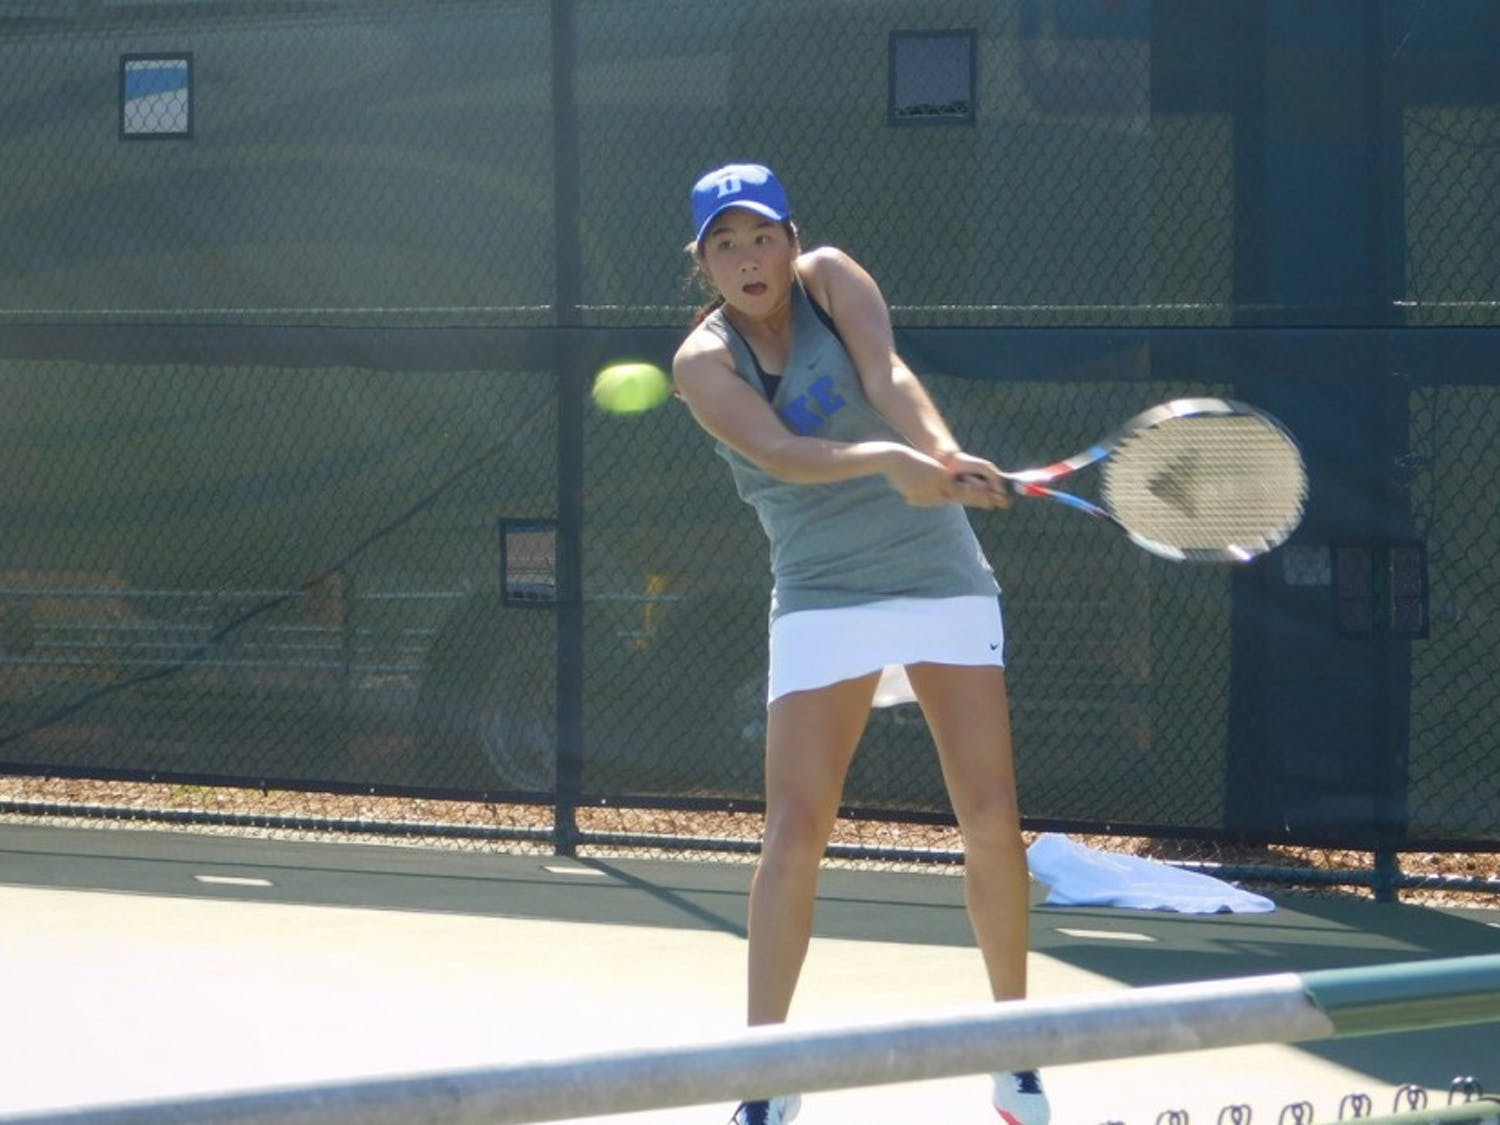 Freshman Kelly Chen was the fourth-ranked recruit in the Class of 2017 and has experience playing at the highest level from this summer's U.S. open qualifiers.